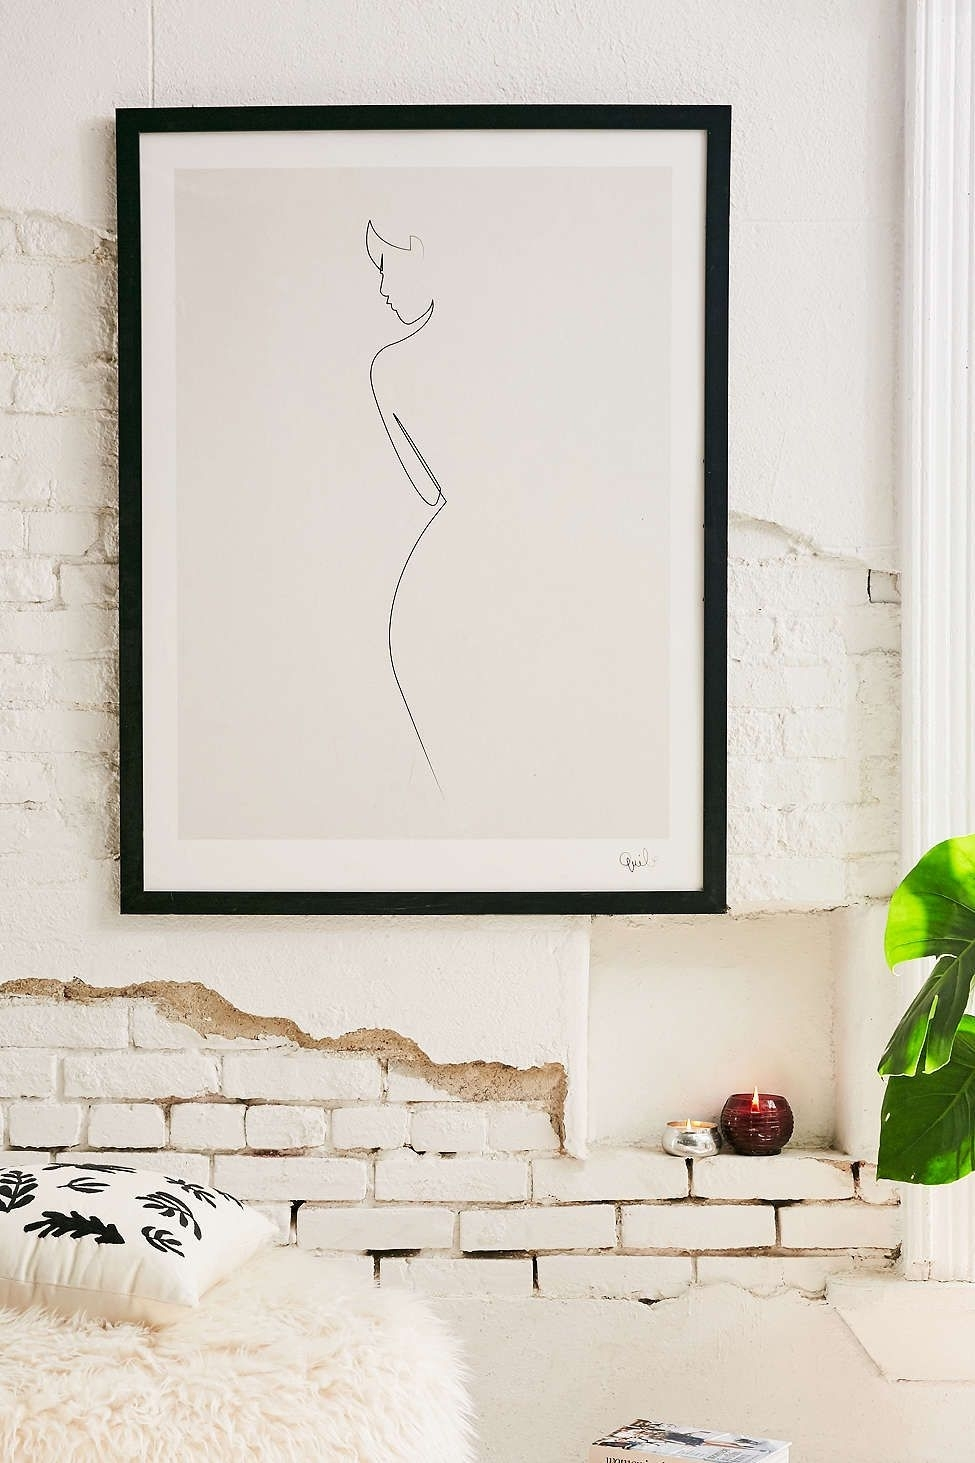 Quibe One Line Nude Art Print | Urban Outfitters, Nude And Urban Intended For 2017 Framed Art Prints For Bedroom (View 11 of 15)